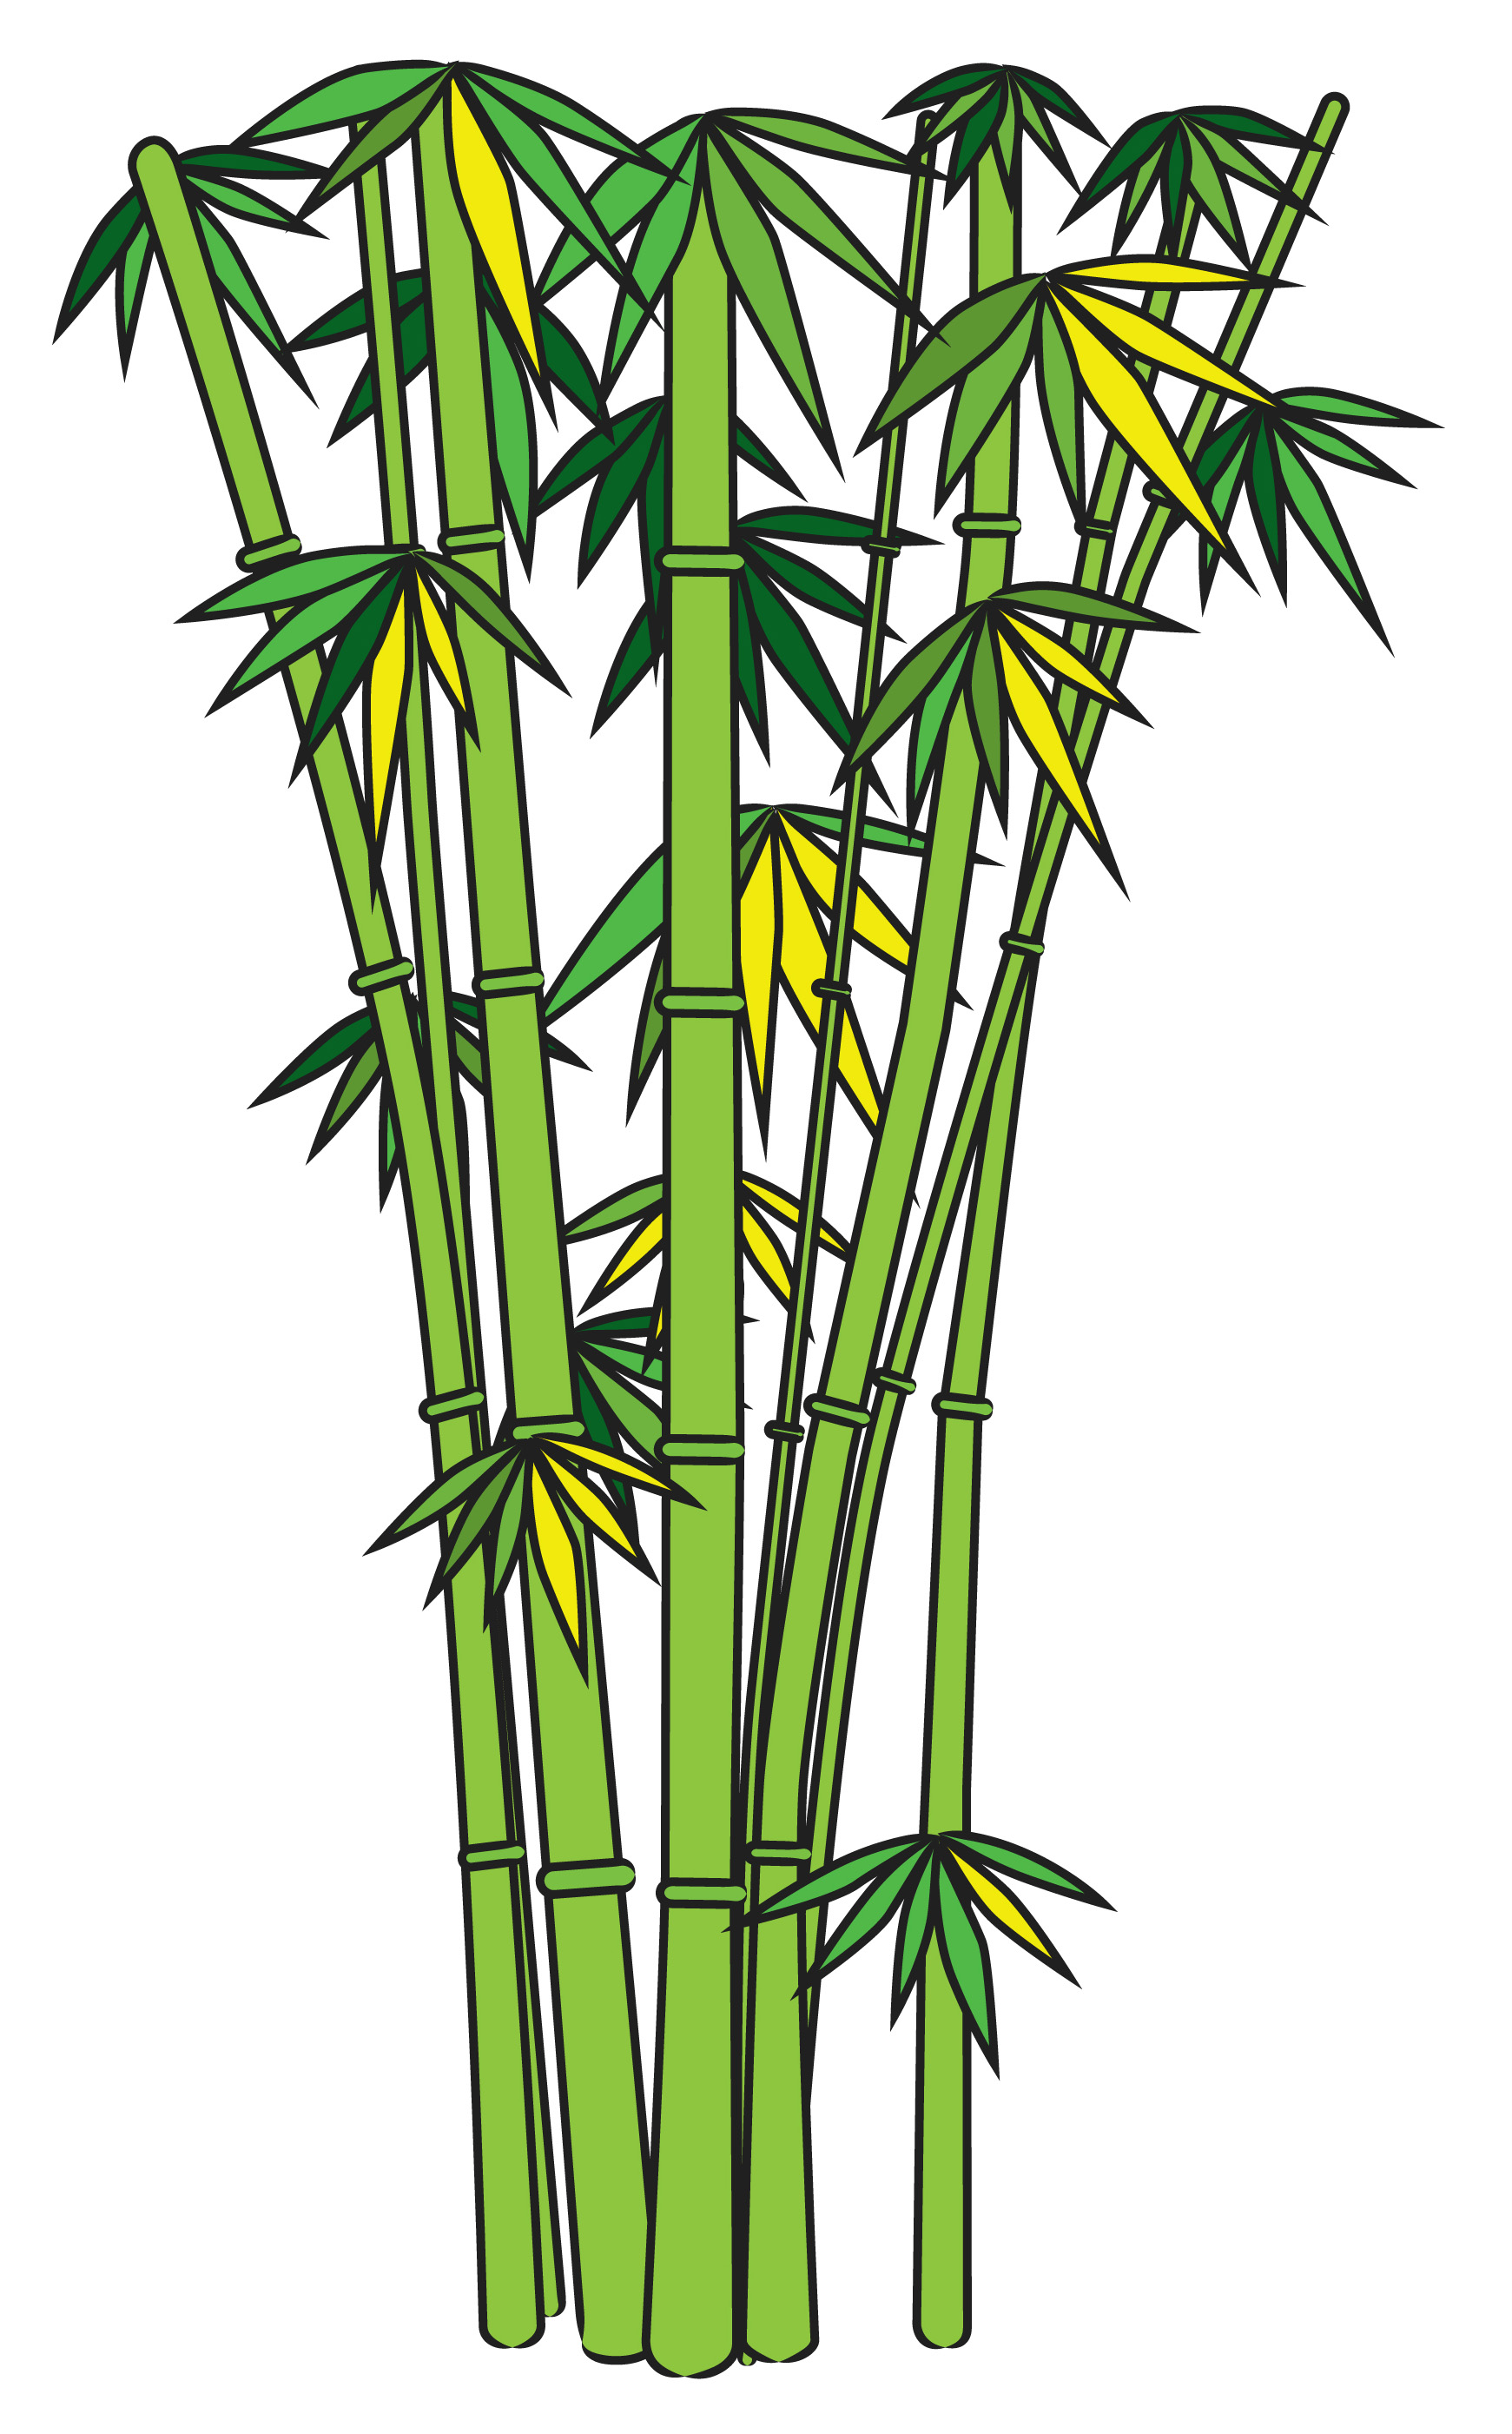 Bamboo clipart #3, Download drawings